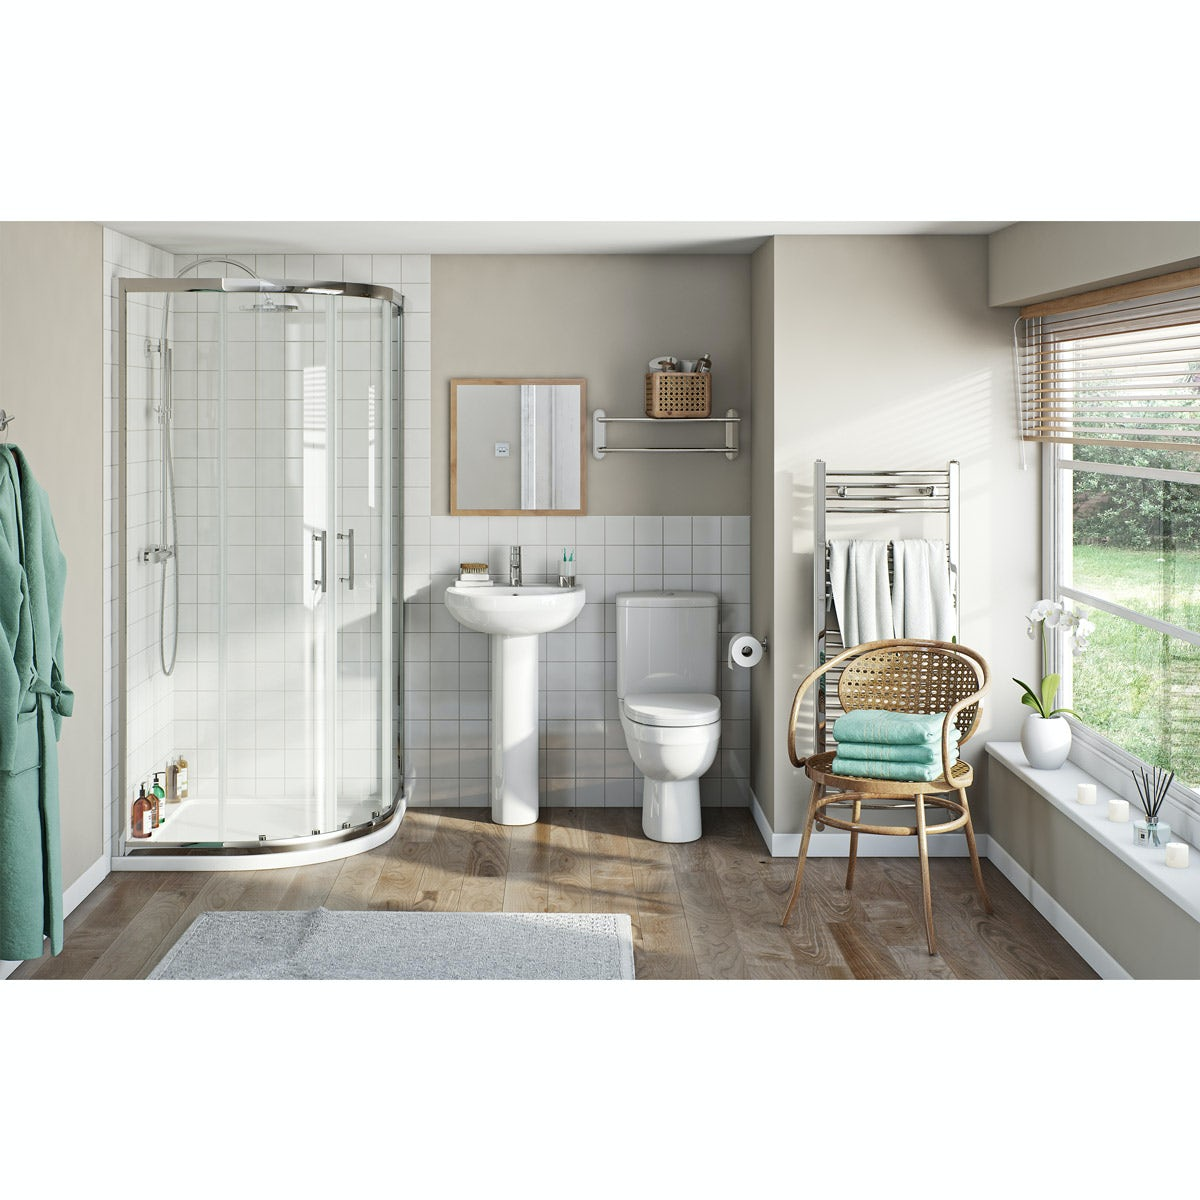 Orchard Eden ensuite with quadrant enclosure and tray